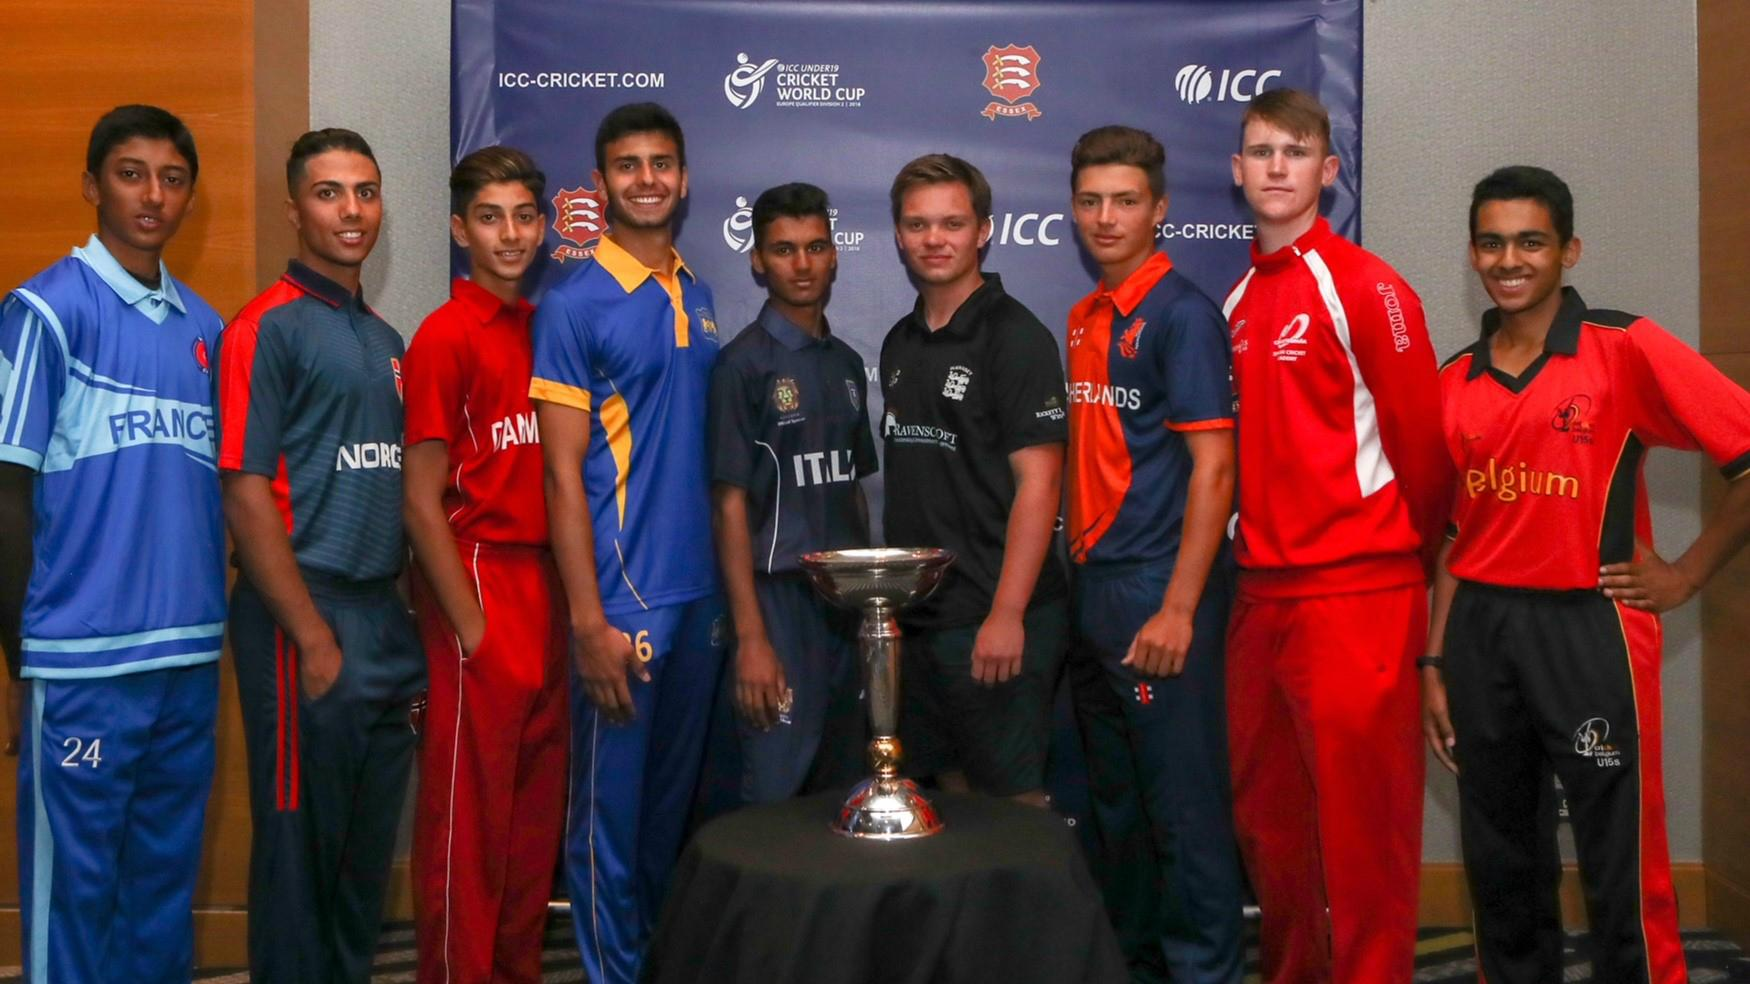 c1c39ec637c The journey to ICC U19 Cricket World Cup 2020 set to begin